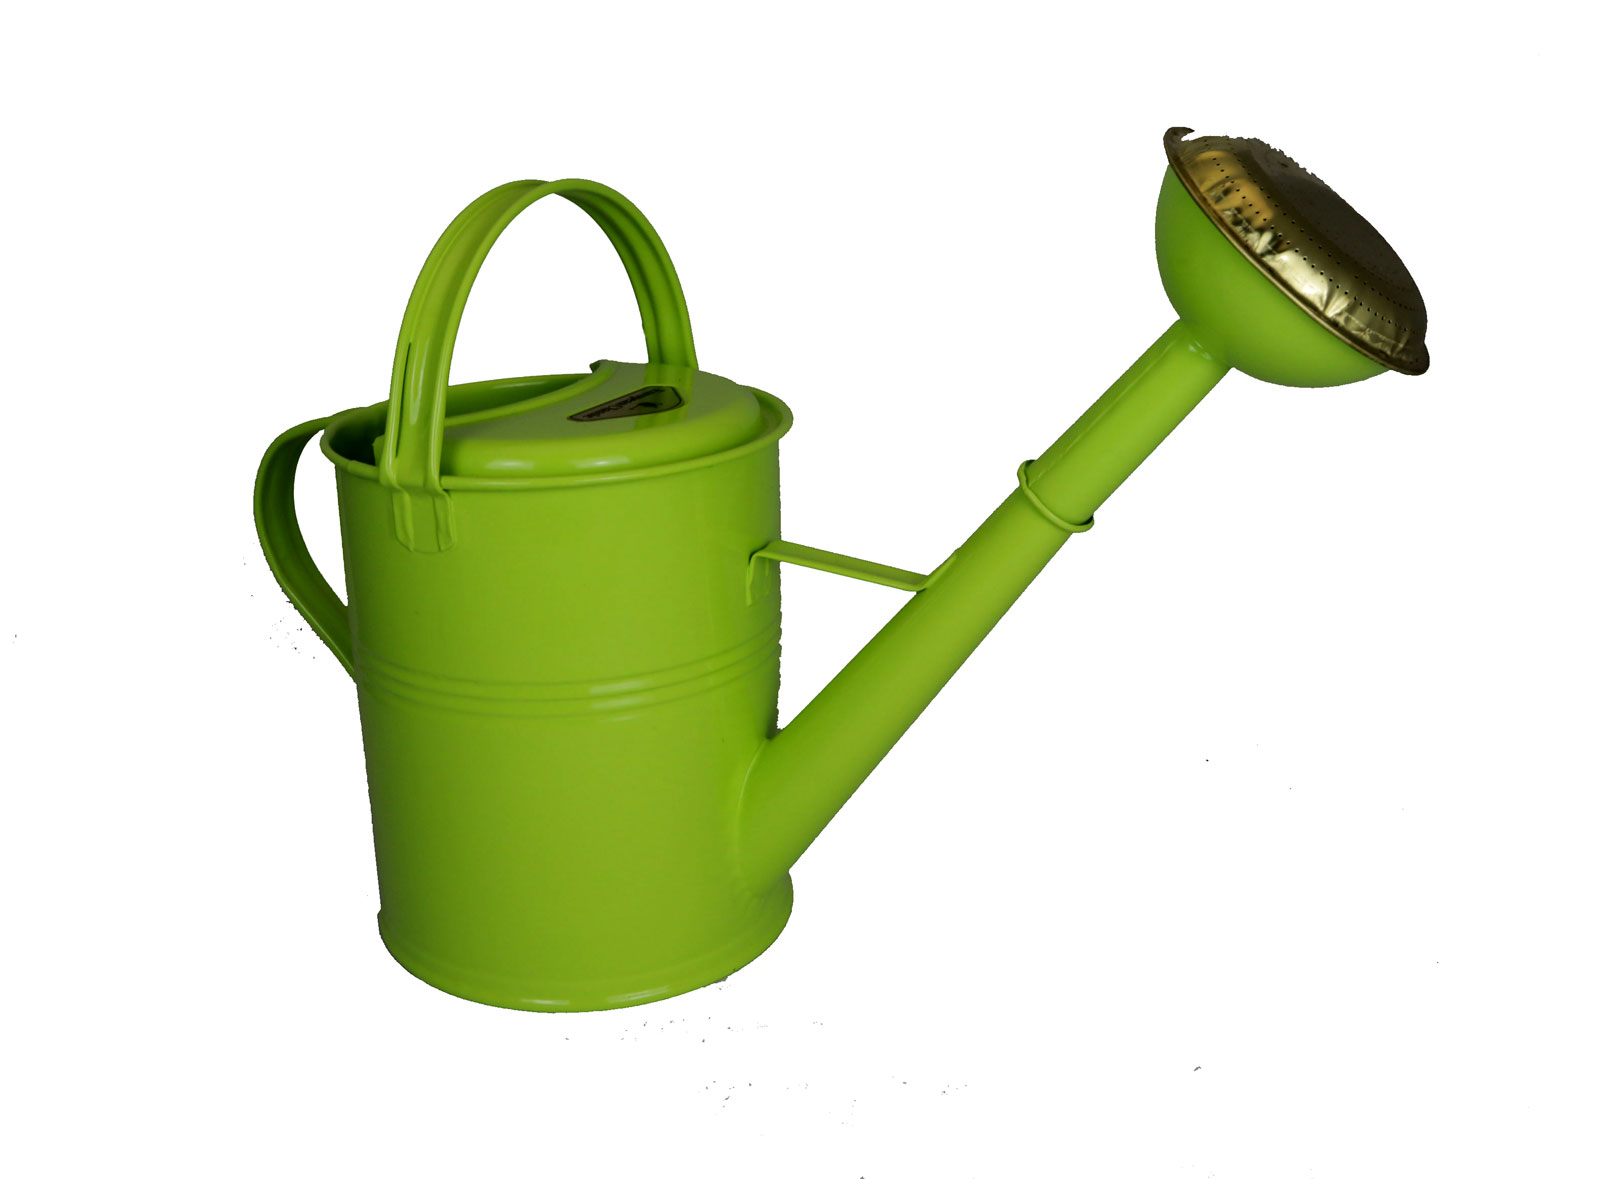 Galvanized Watering Cans Classic Round Galvanized Watering Can 1 25 Gallon Plain